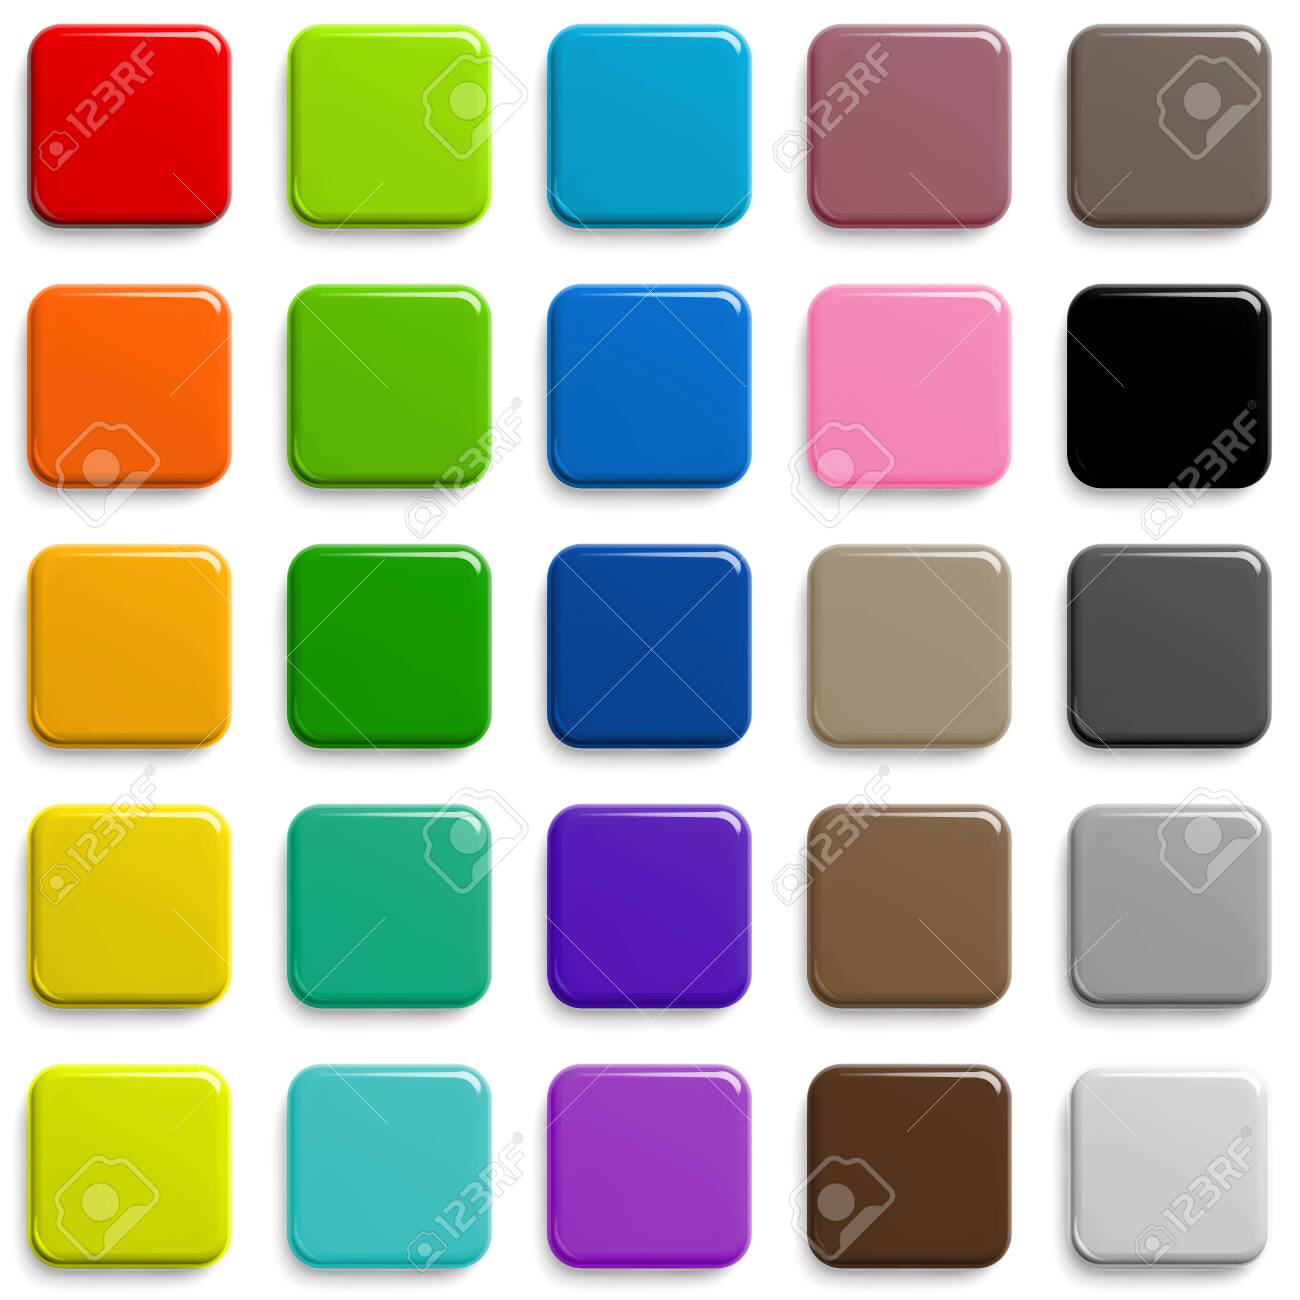 Web Buttons Sqaure Shape Design in Different Colors with Shadow. - 146873474